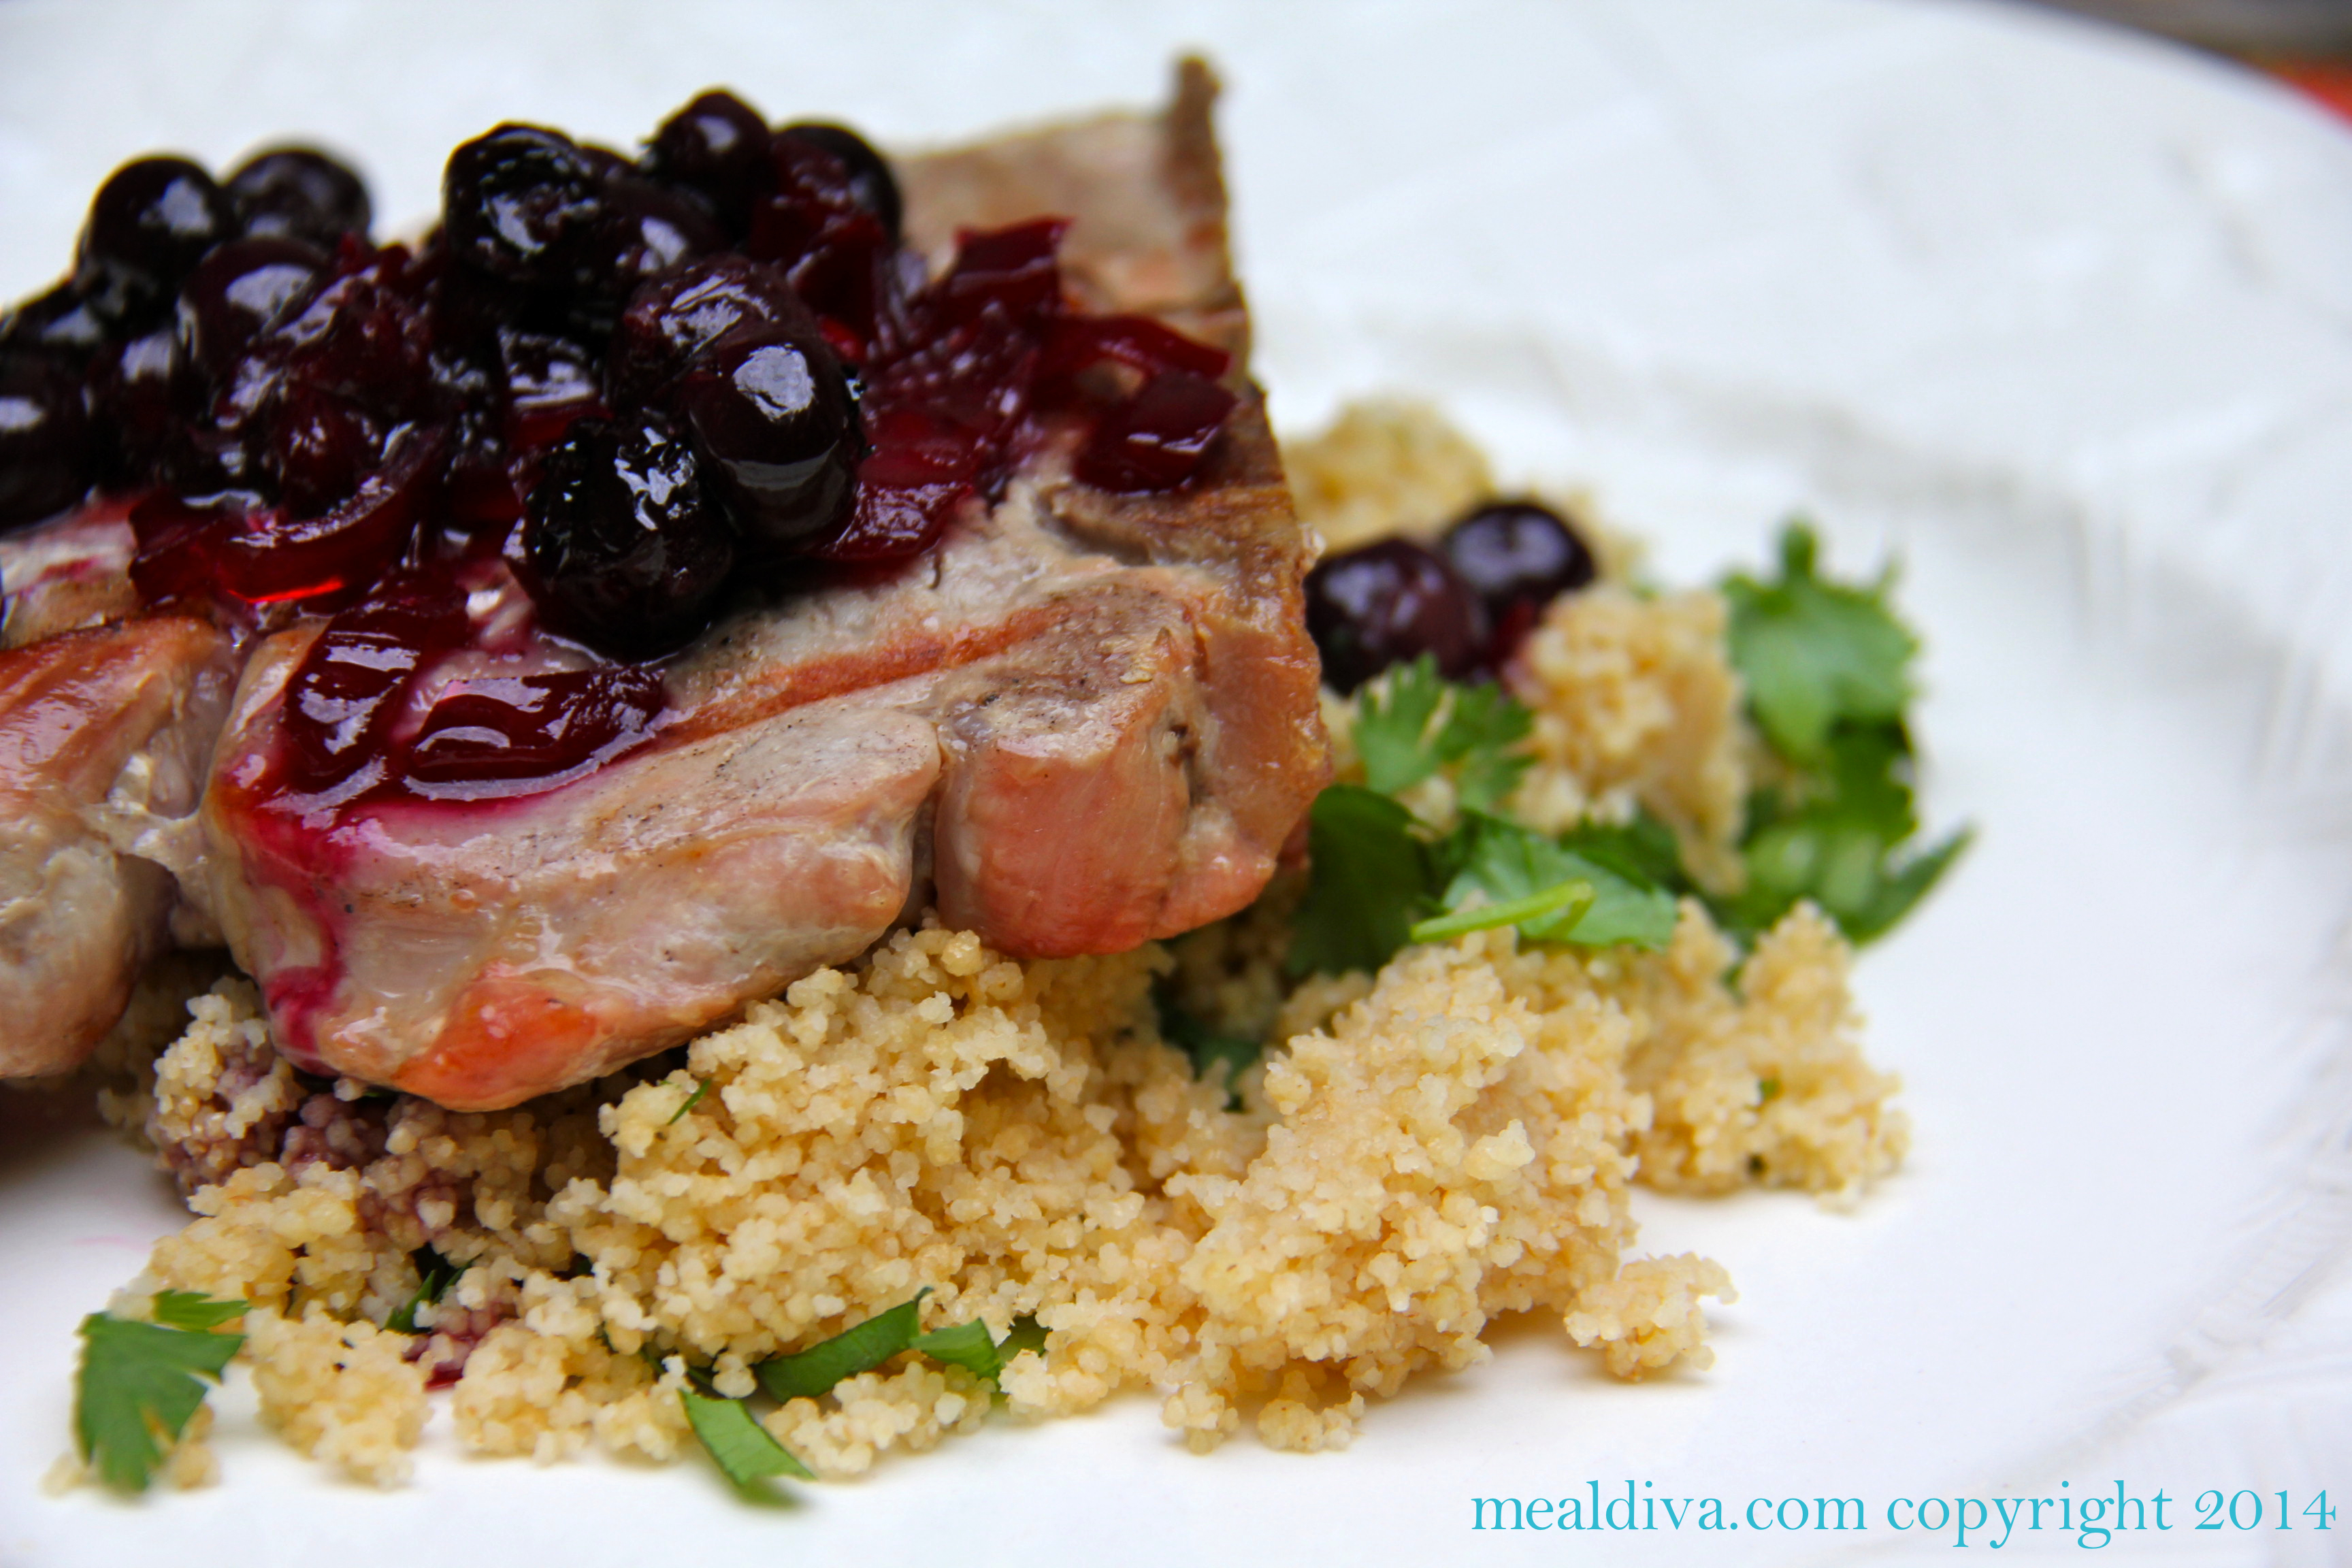 Blueberry Pork Chops #SundaySupper #ChooseDreams